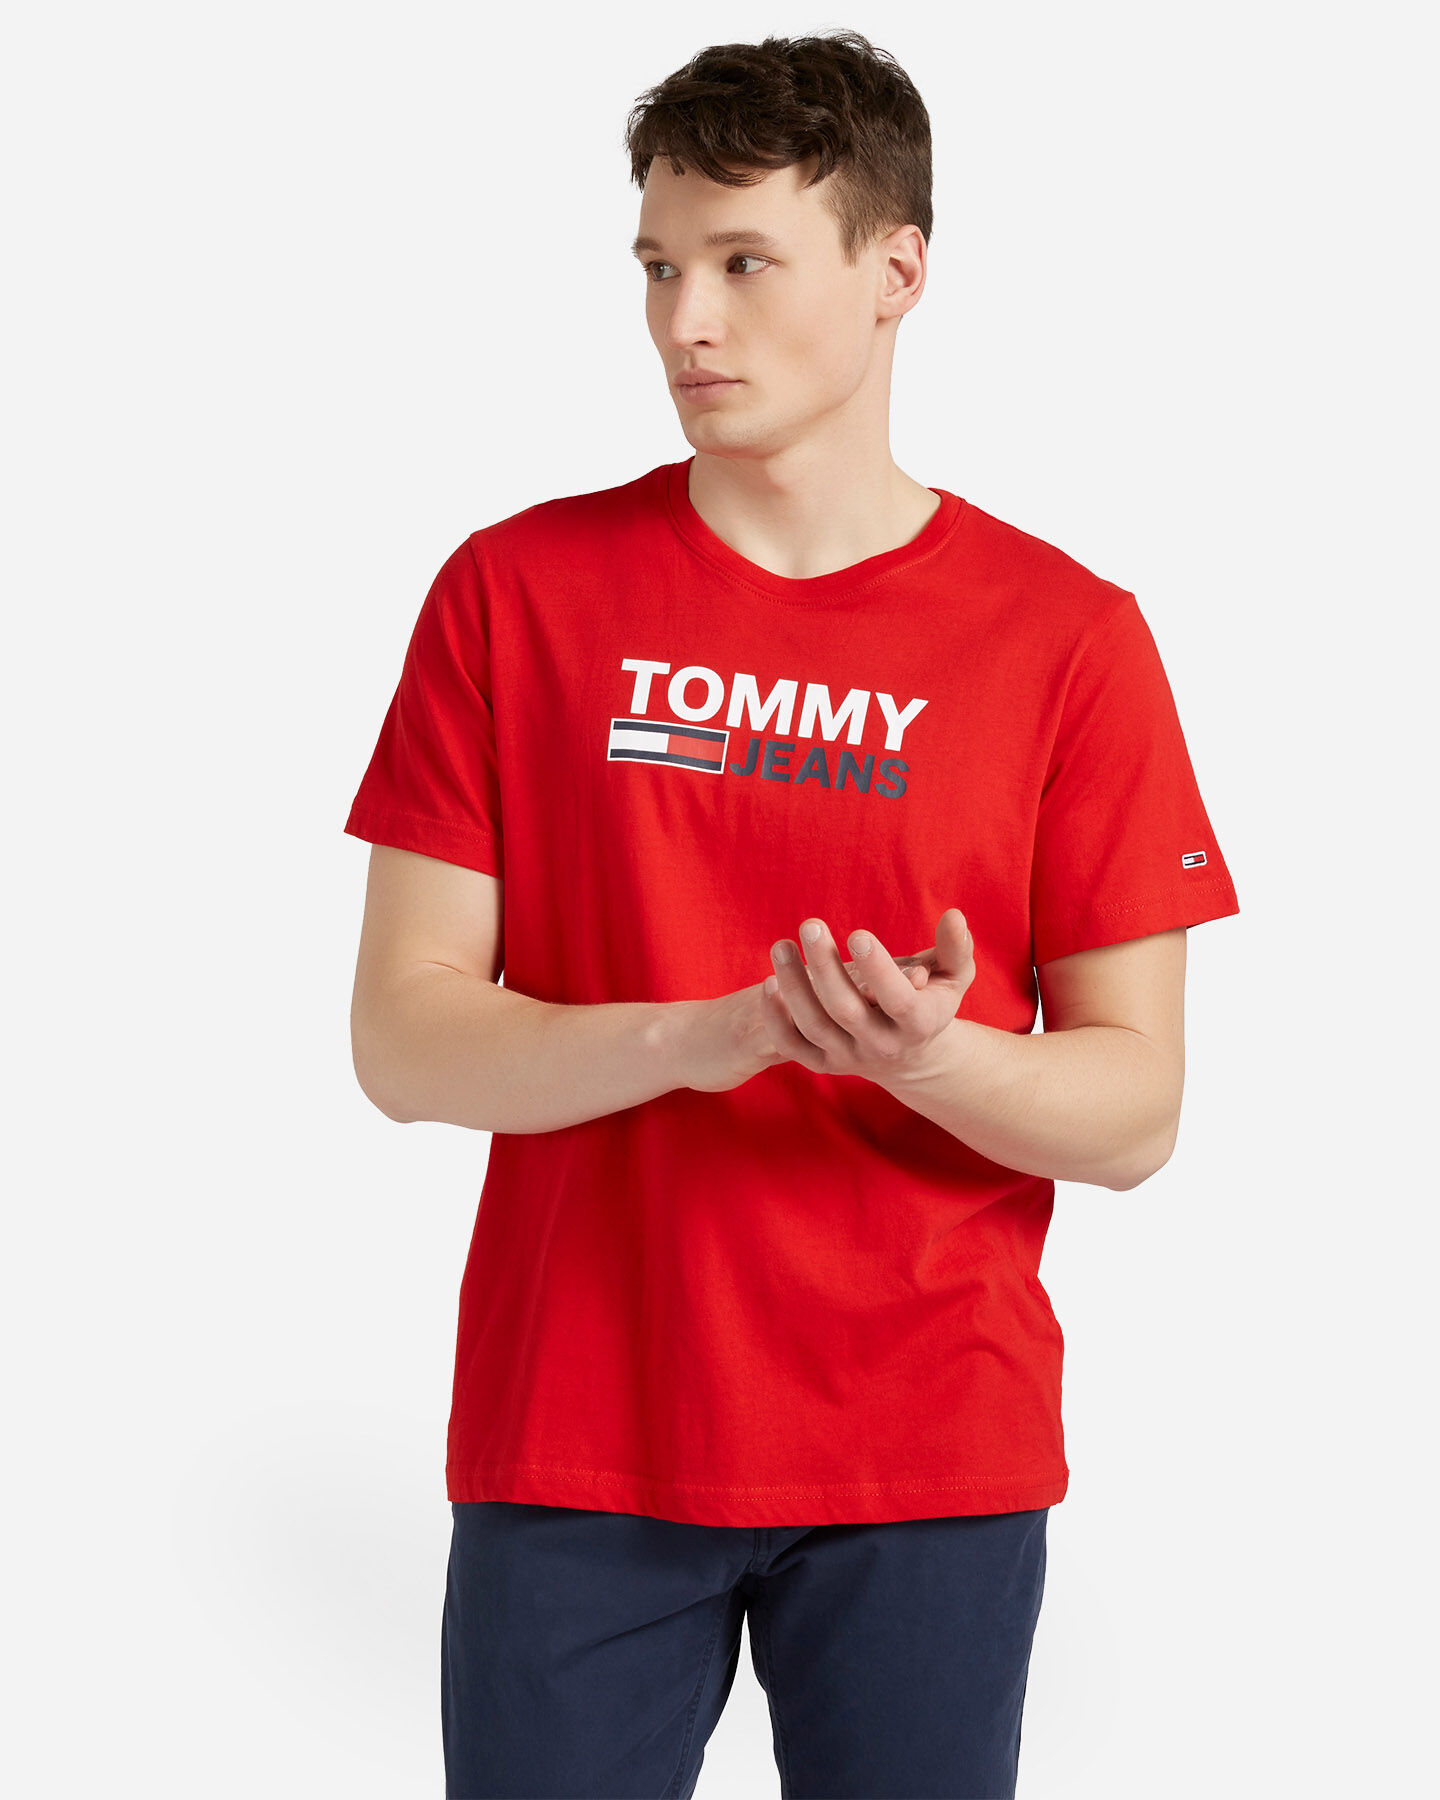 T-Shirt TOMMY HILFIGER CORP LOGO M S4088732 scatto 0